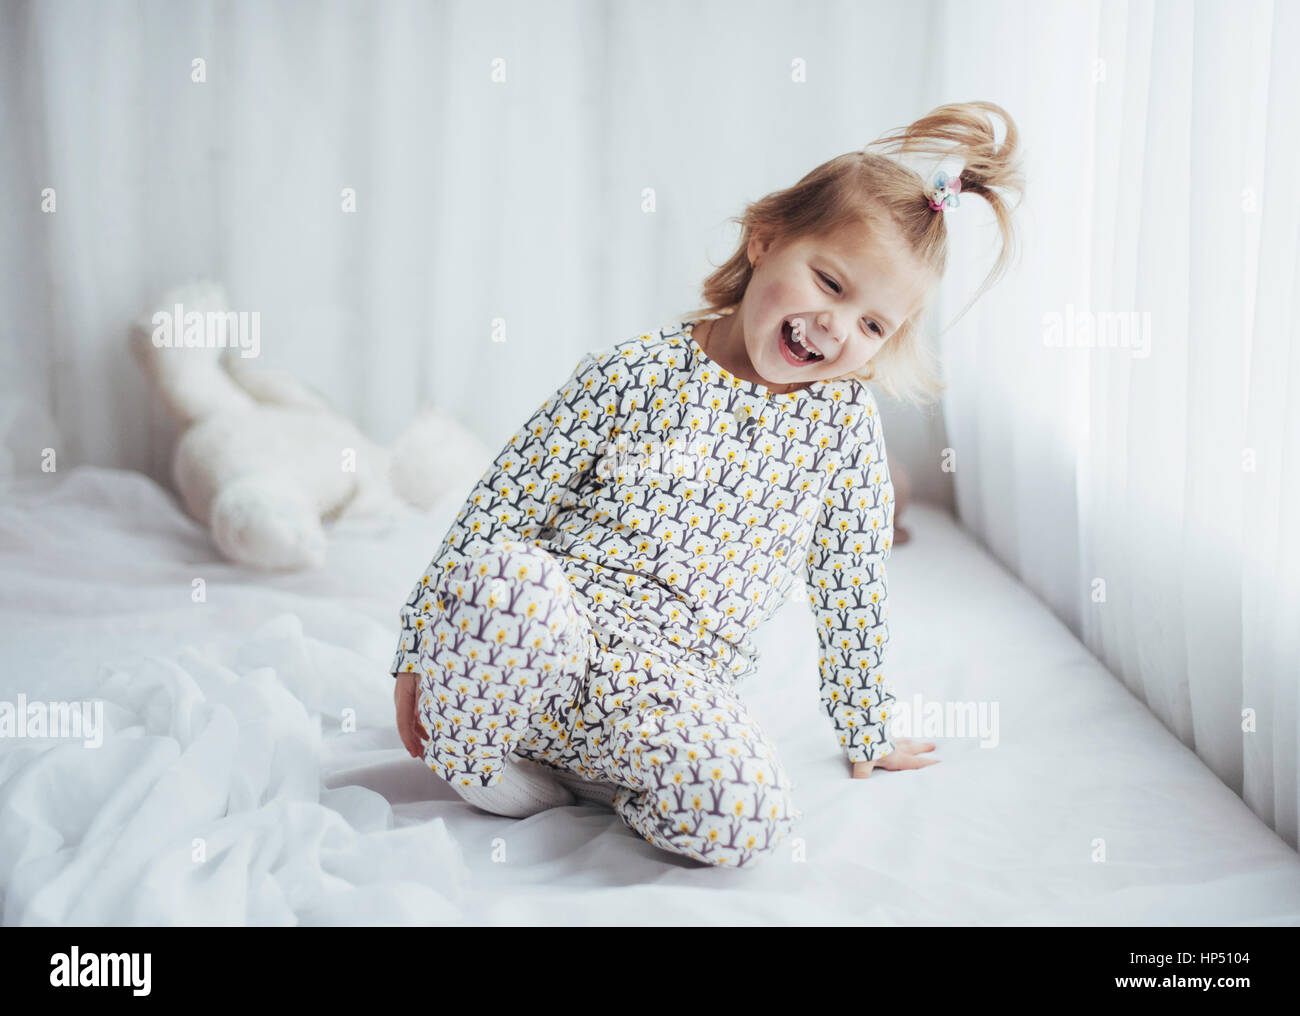 Enfant en pyjama Photo Stock